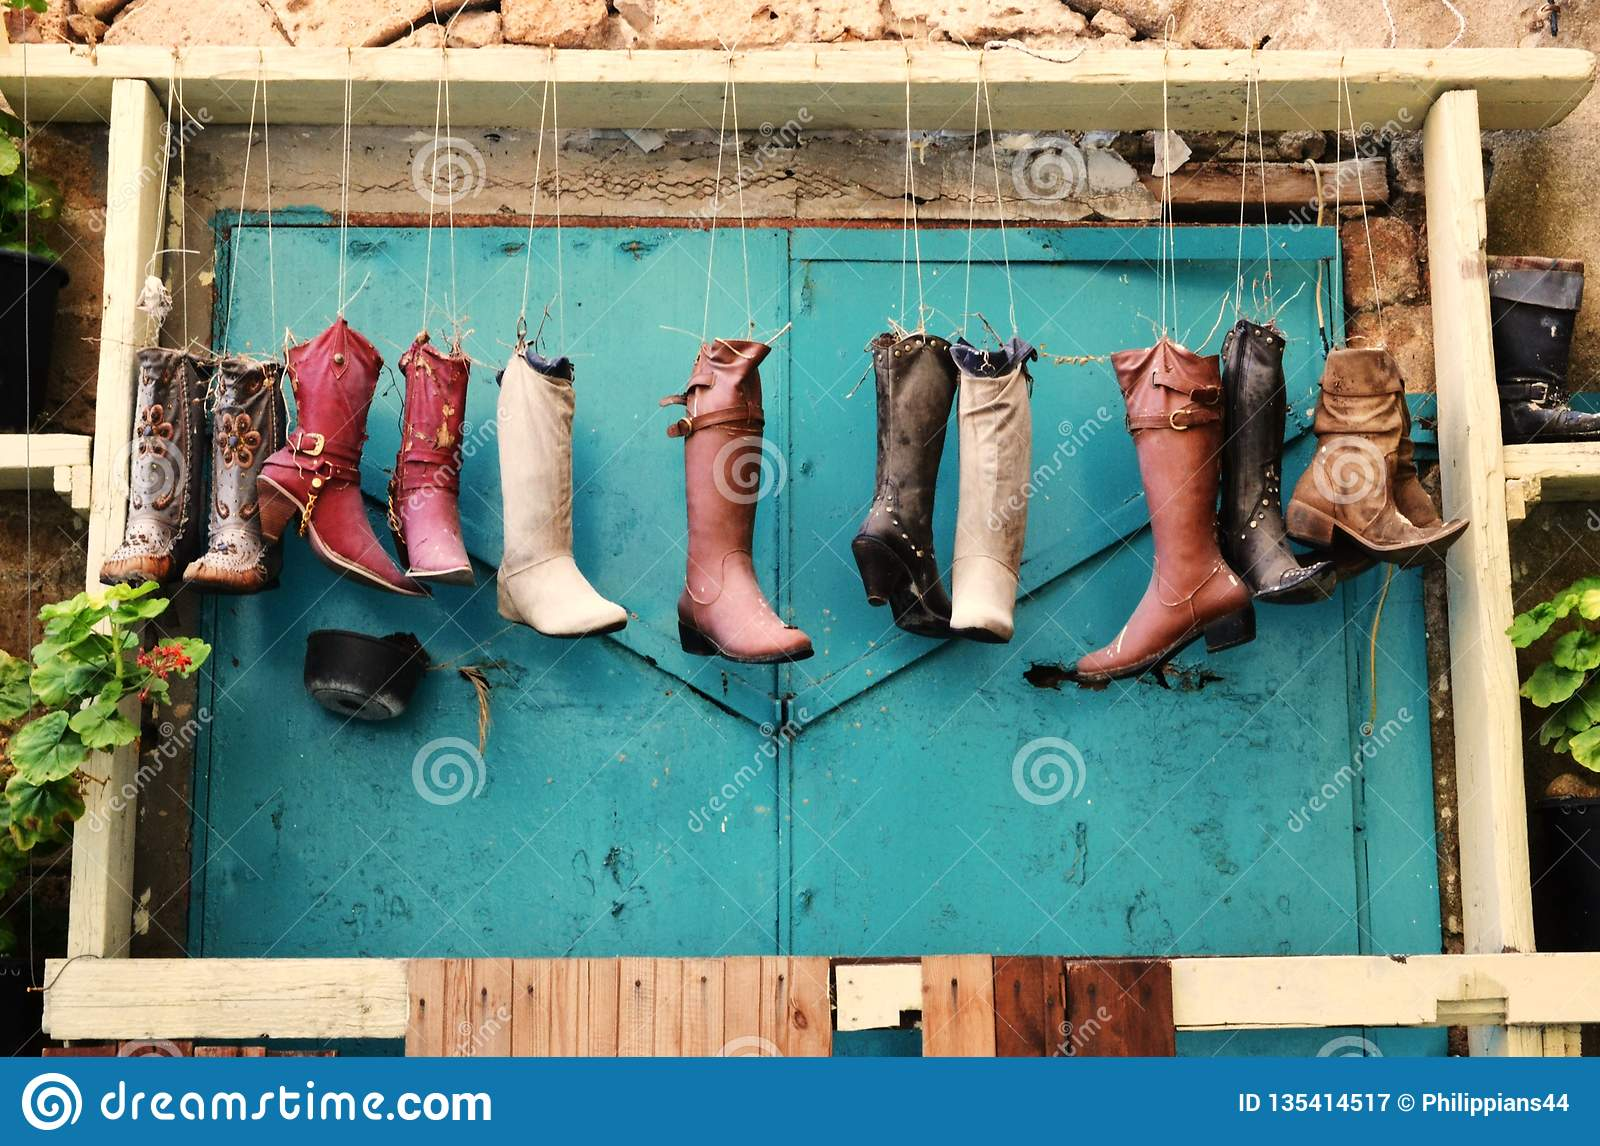 Curiosities in Acre, Akko, boots and shoes, handbags, as flower pots, exterior design and decoration, in Israel